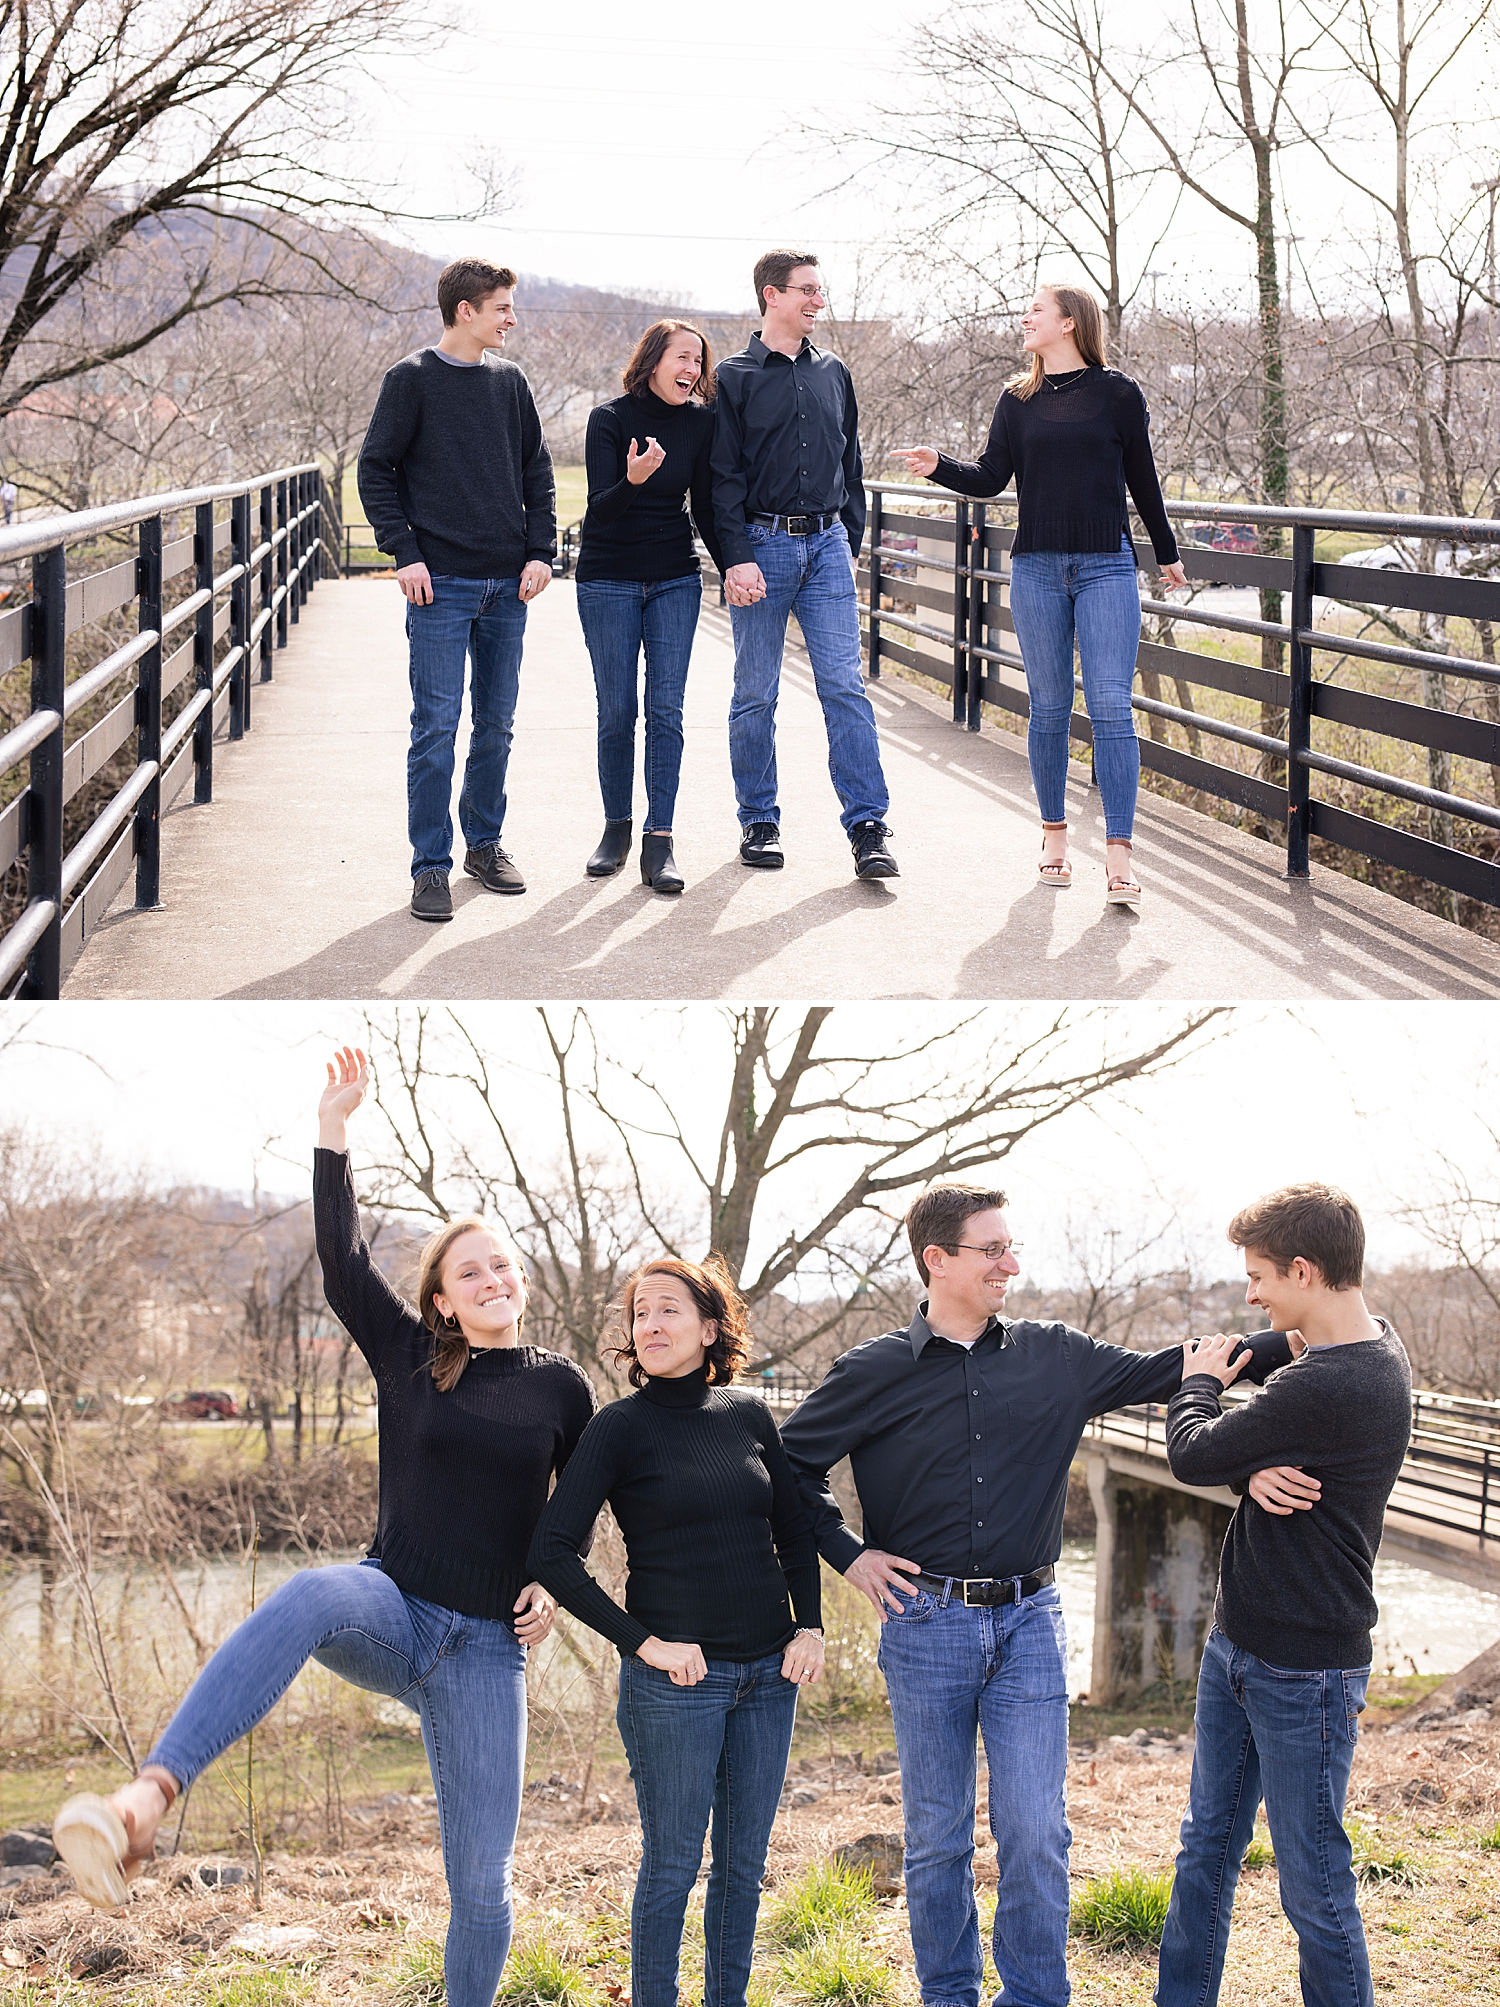 I had to include this fun personality shot! I told you they are the perfect blend and crazy and calm! So funny!